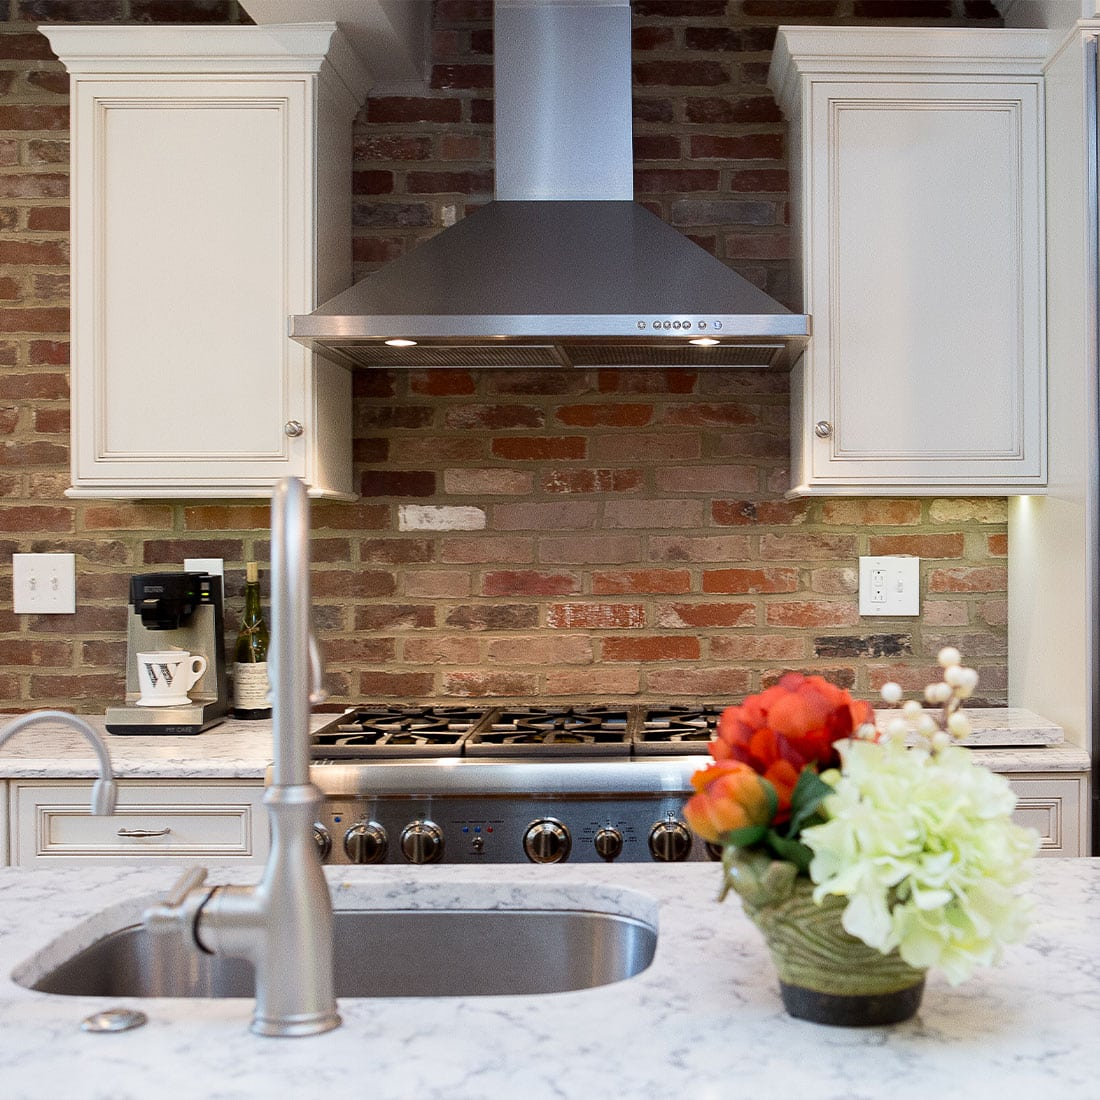 Existing brick wall warms renovated kitchen with white cabinets and marble countertops